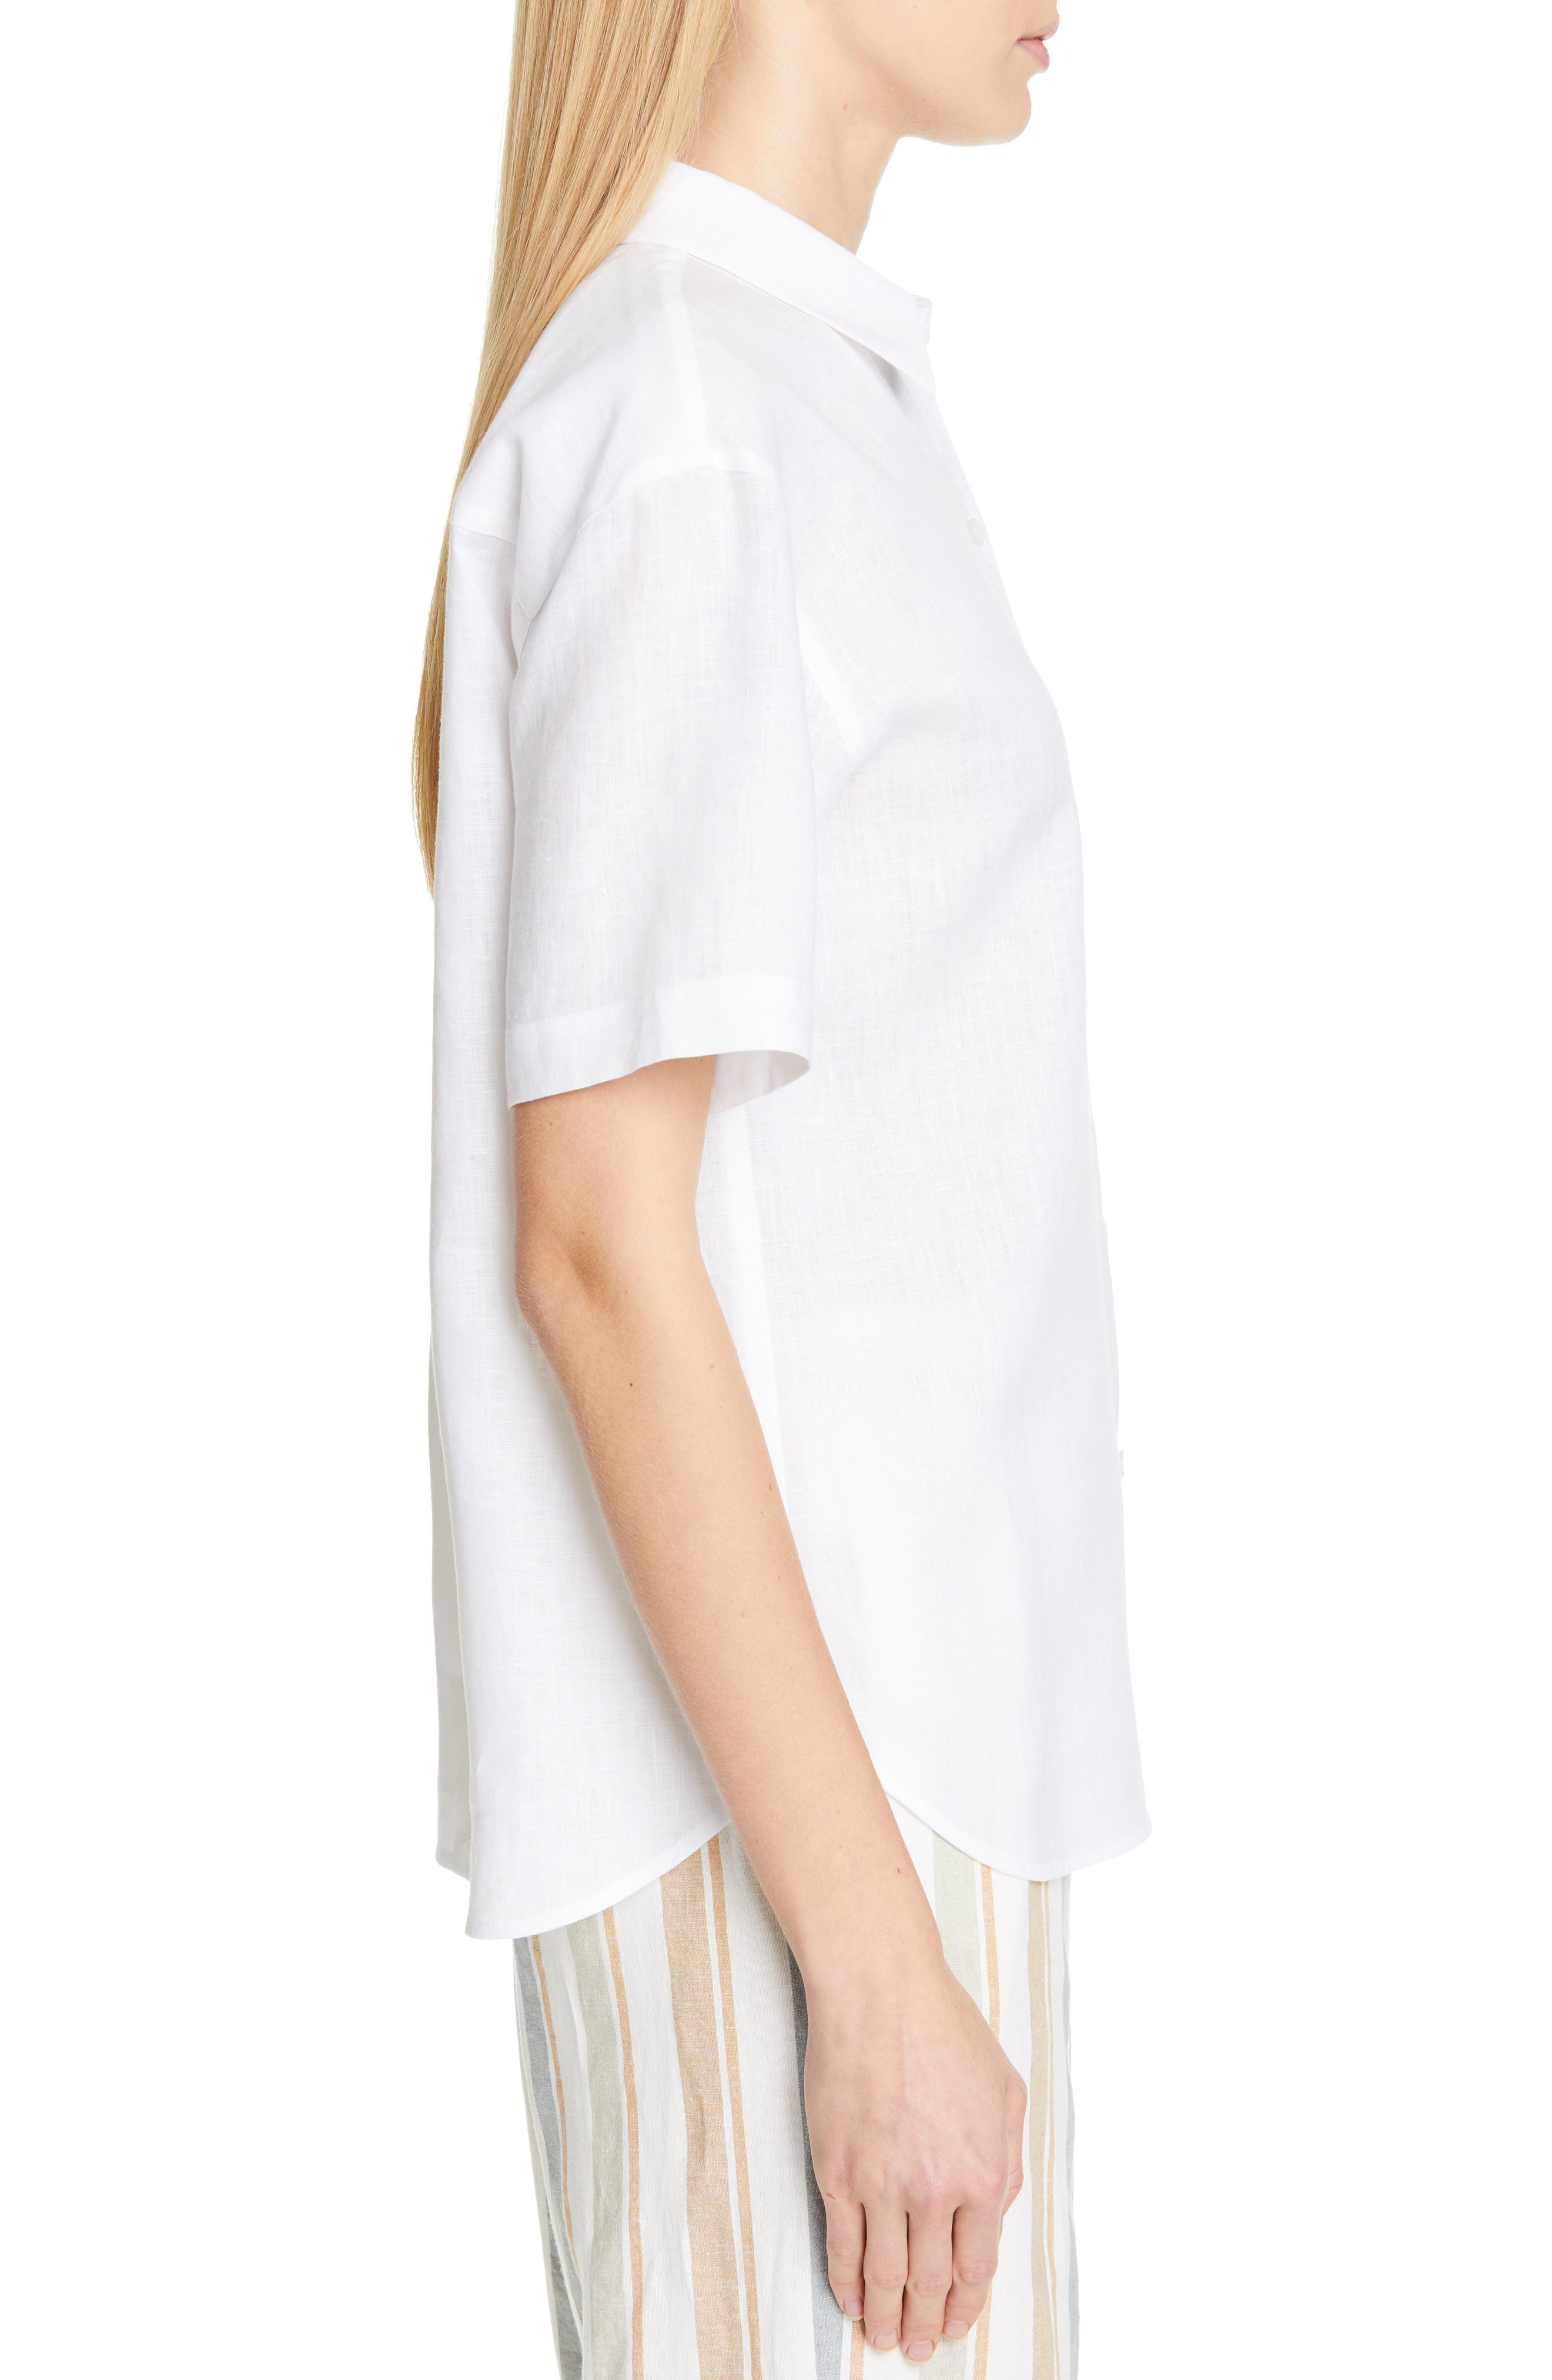 LAFAYETTE 148 NEW YORK, Justice Linen Shirt, Alternate thumbnail 3, color, WHITE